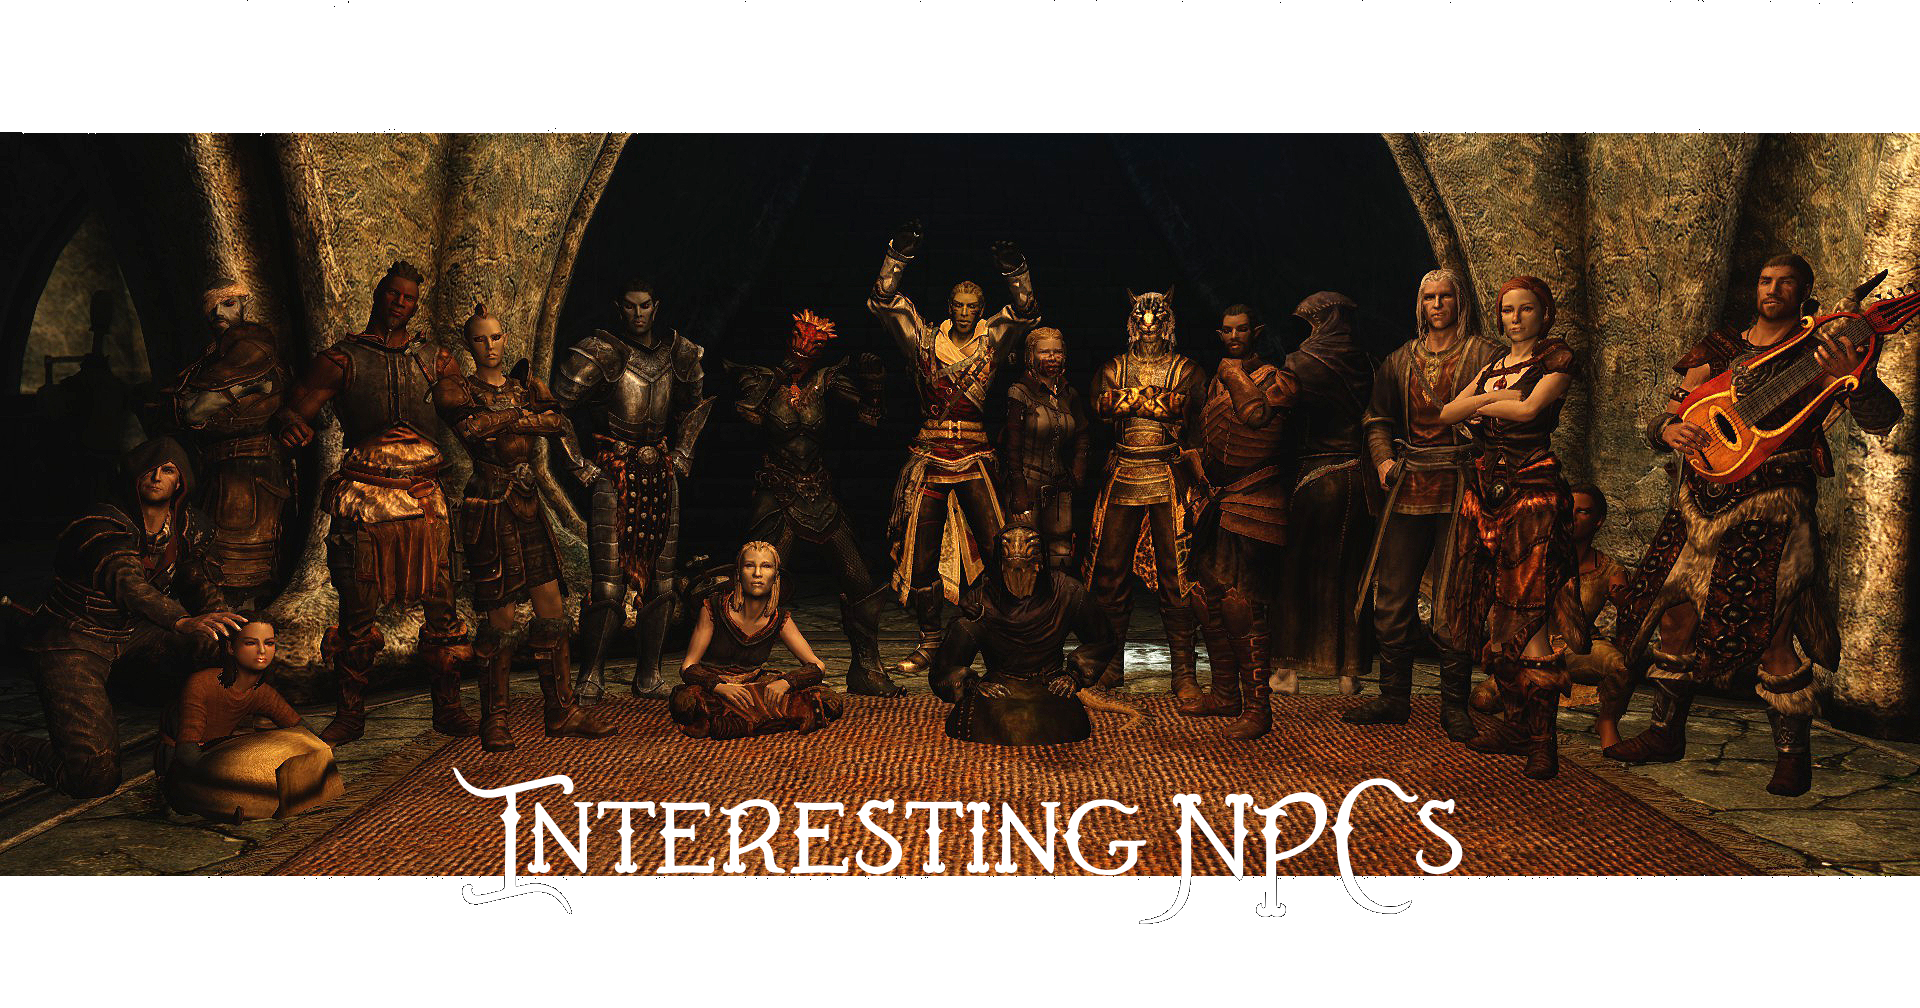 Interesting NPCs | The Elder Scrolls Mods Wiki | FANDOM powered by Wikia